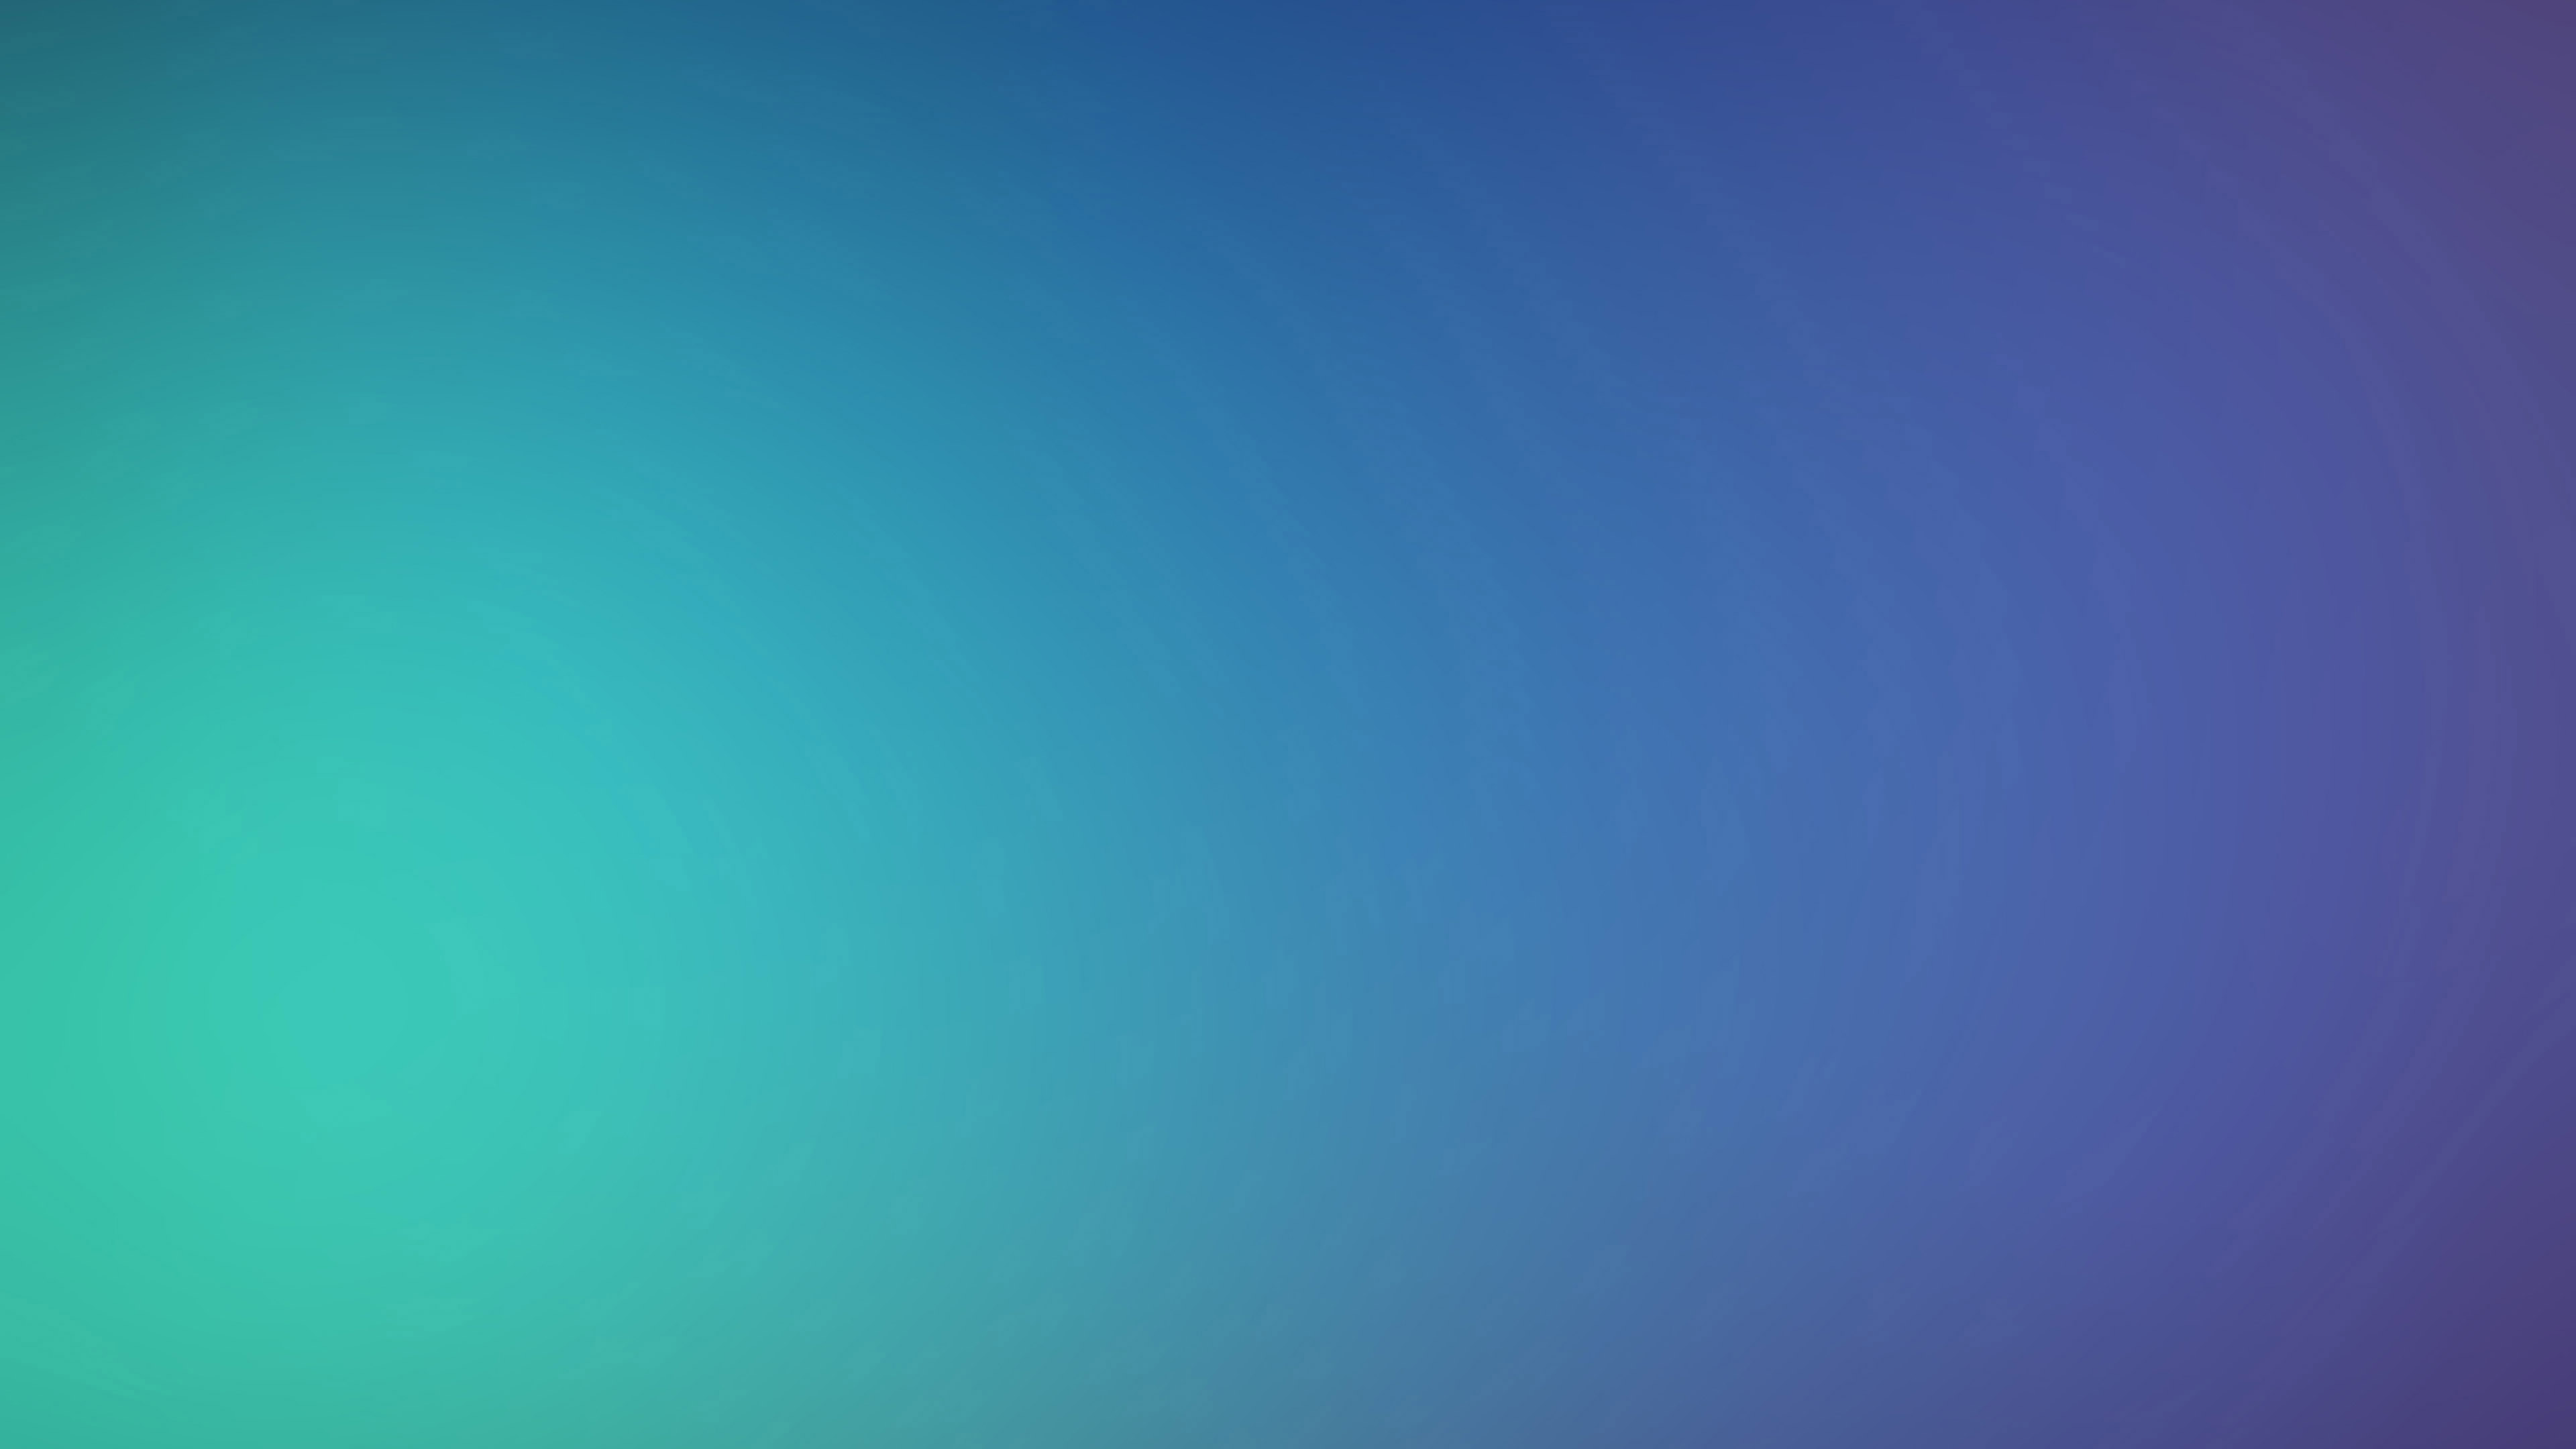 Iphone Se Fall Colors Wallpaper Sd69 Blue Windows Green Gradation Blur Papers Co